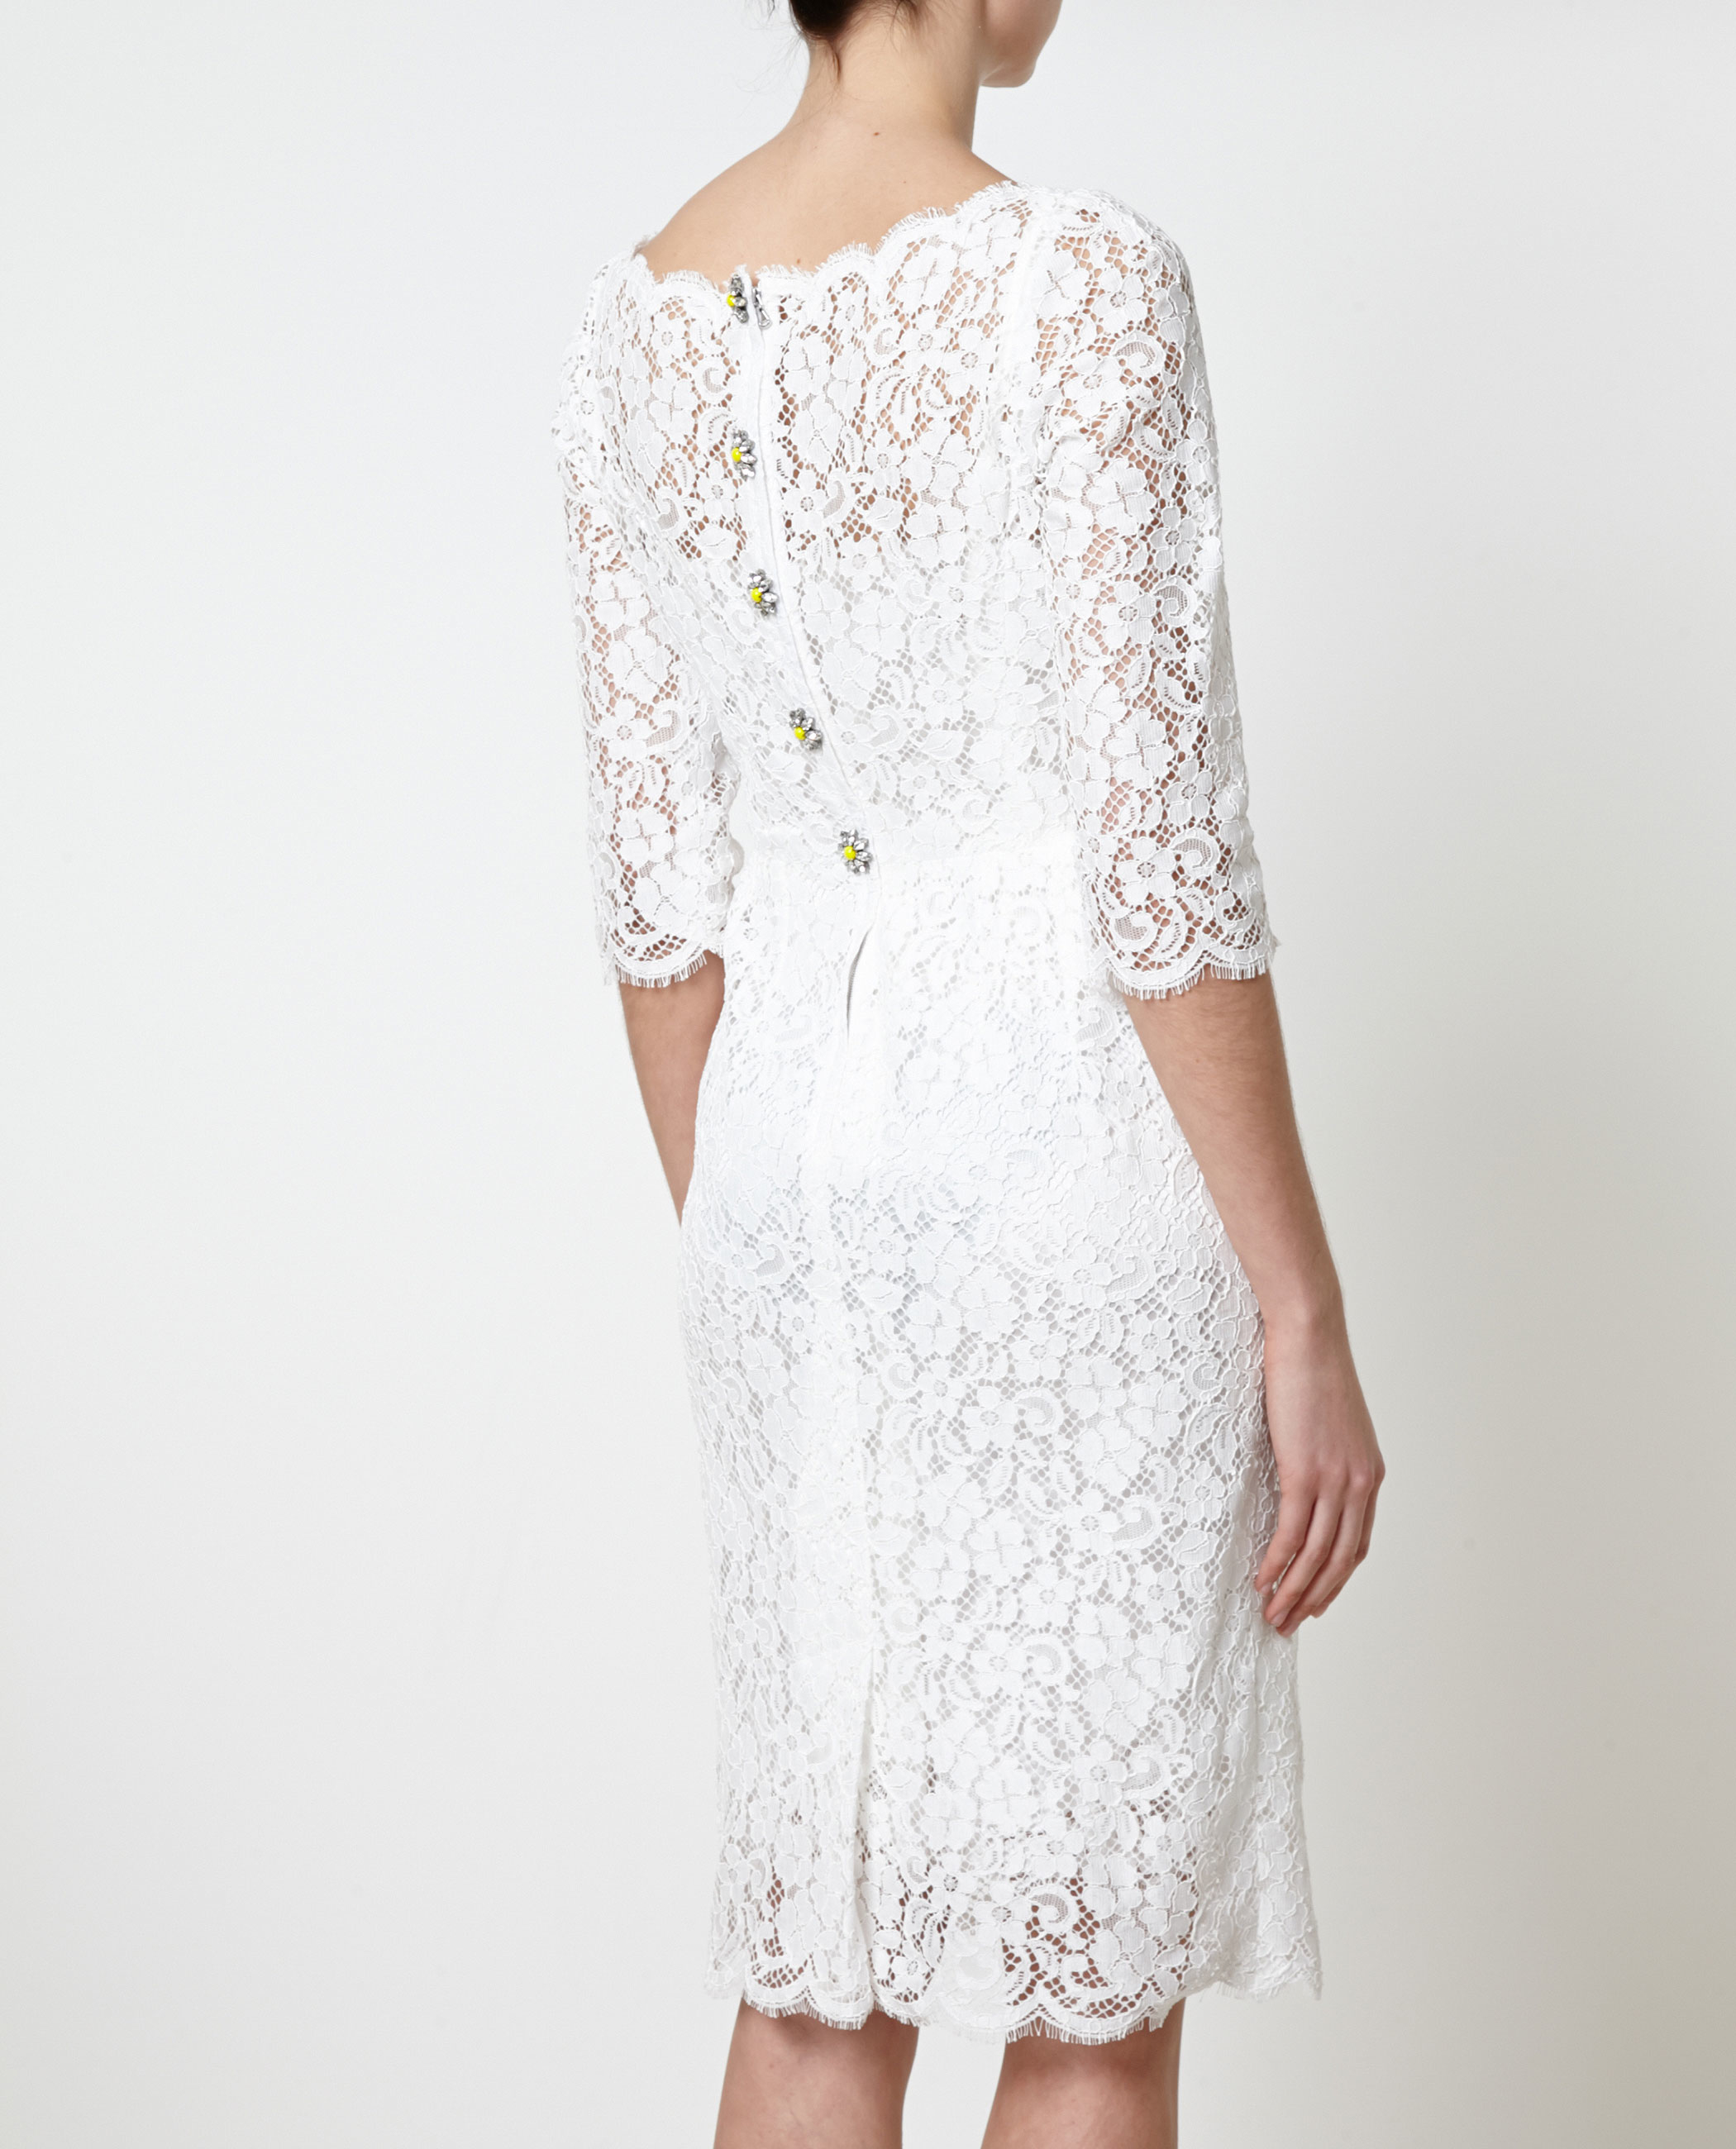 2019 year for girls- Gabbana and Dolce white lace dress